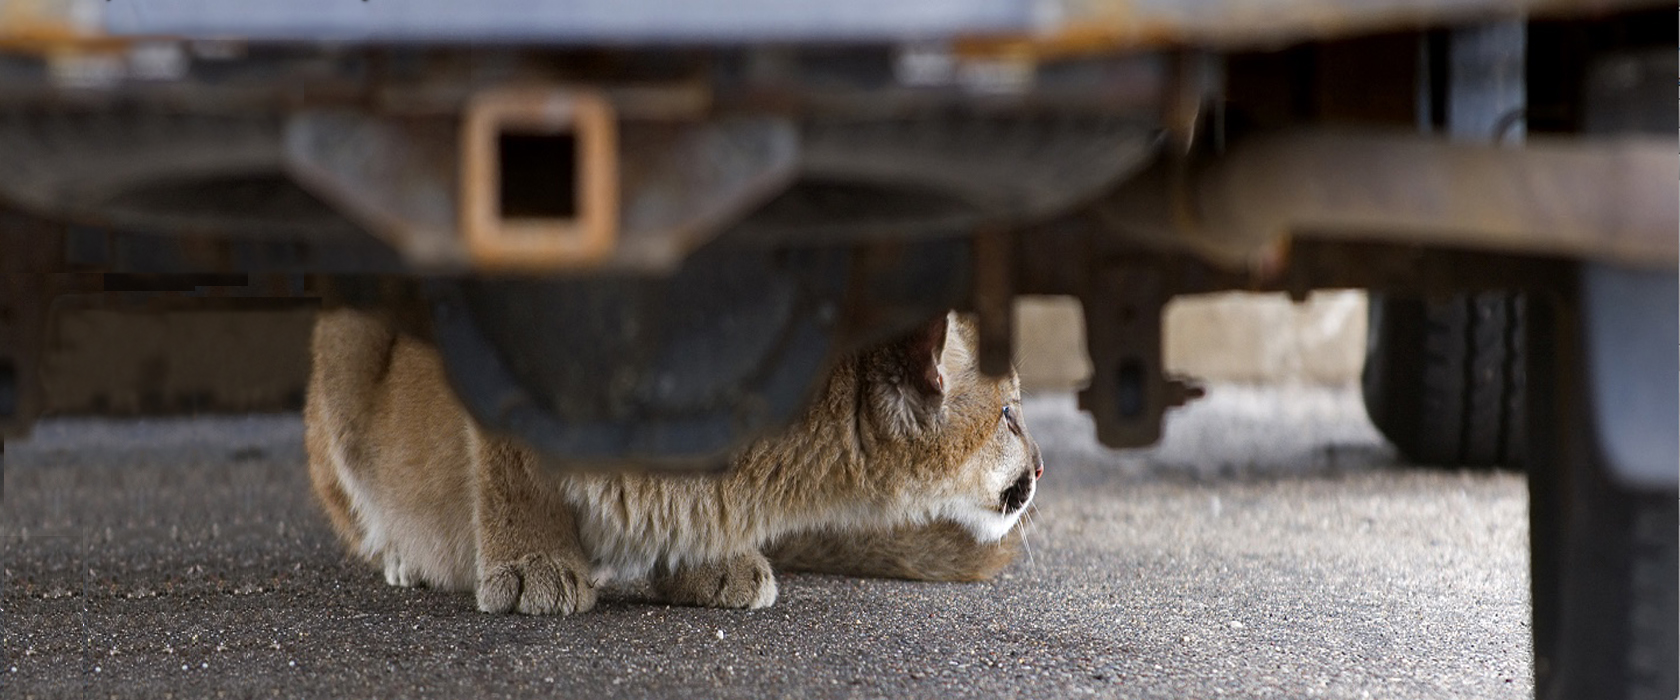 Mt Lion under car